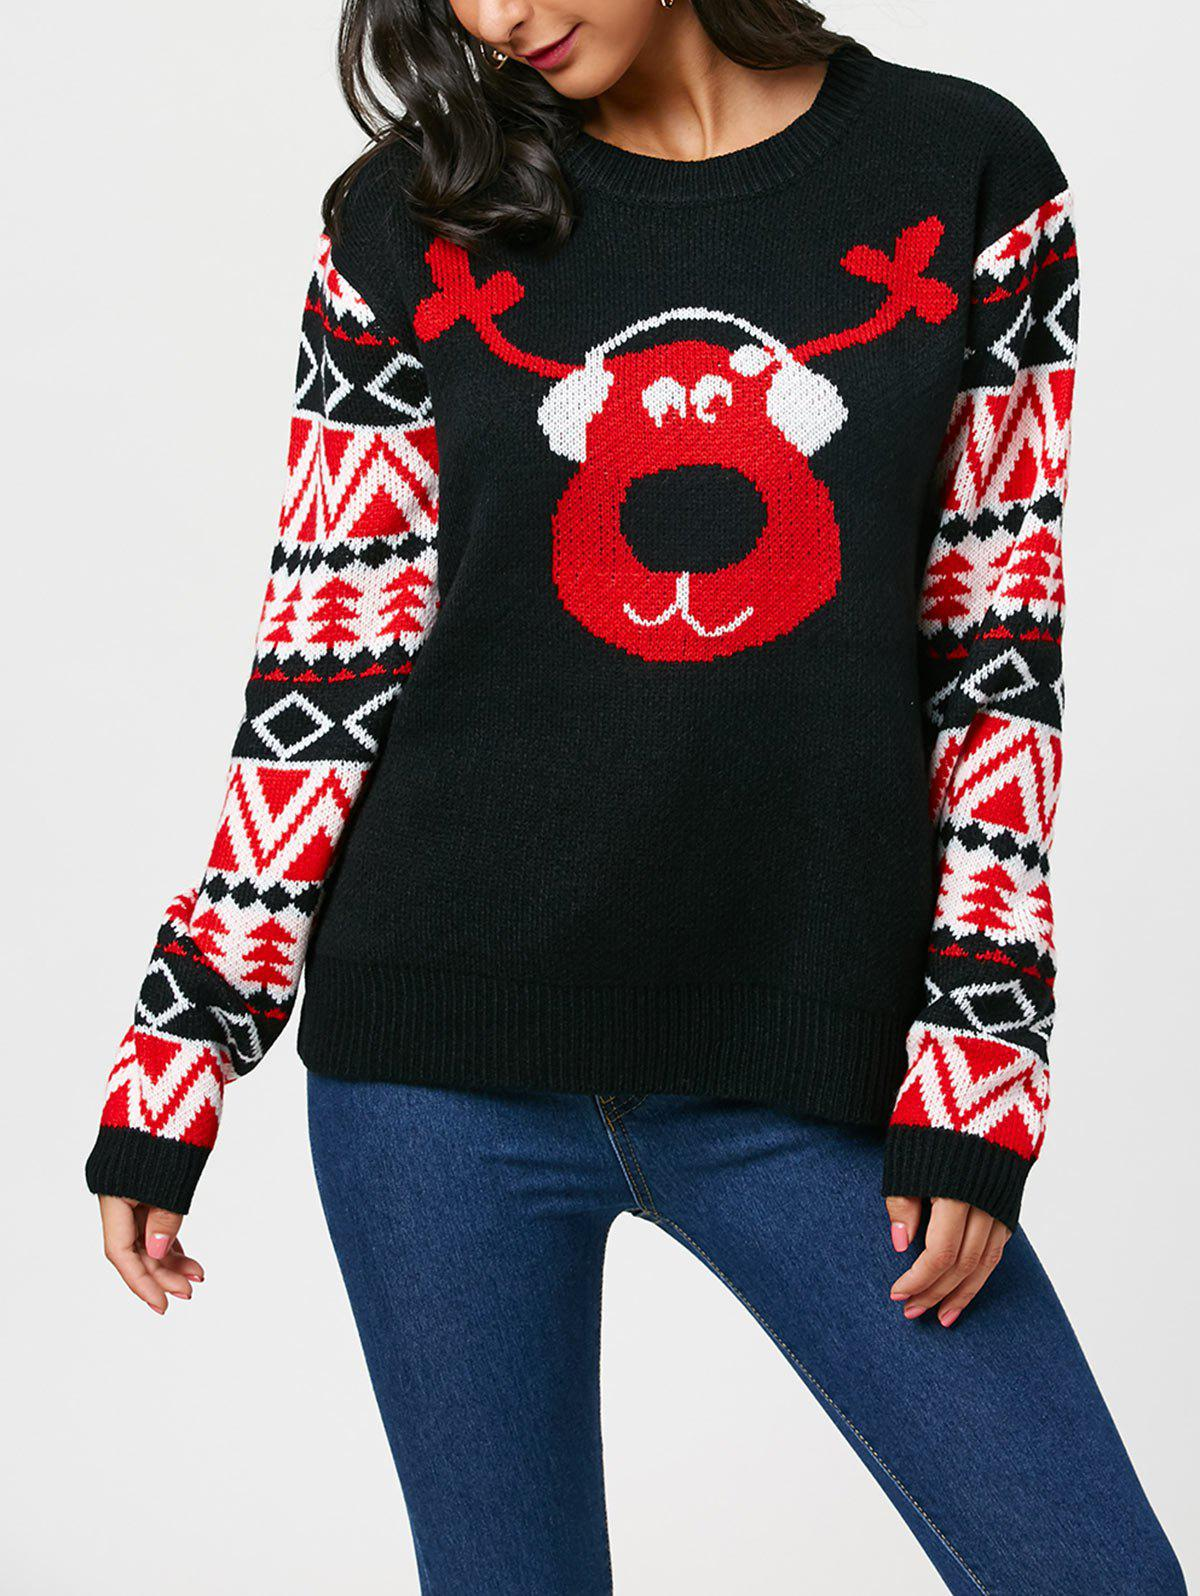 Christmas Reindeer Listen Music SweaterWOMEN<br><br>Size: ONE SIZE; Color: BLACK; Type: Pullovers; Material: Acrylic,Polyester; Sleeve Length: Full; Collar: Round Neck; Style: Fashion; Pattern Type: Character; Season: Fall,Spring,Winter; Elasticity: Micro-elastic; Weight: 0.5000kg; Package Contents: 1 x Sweater;